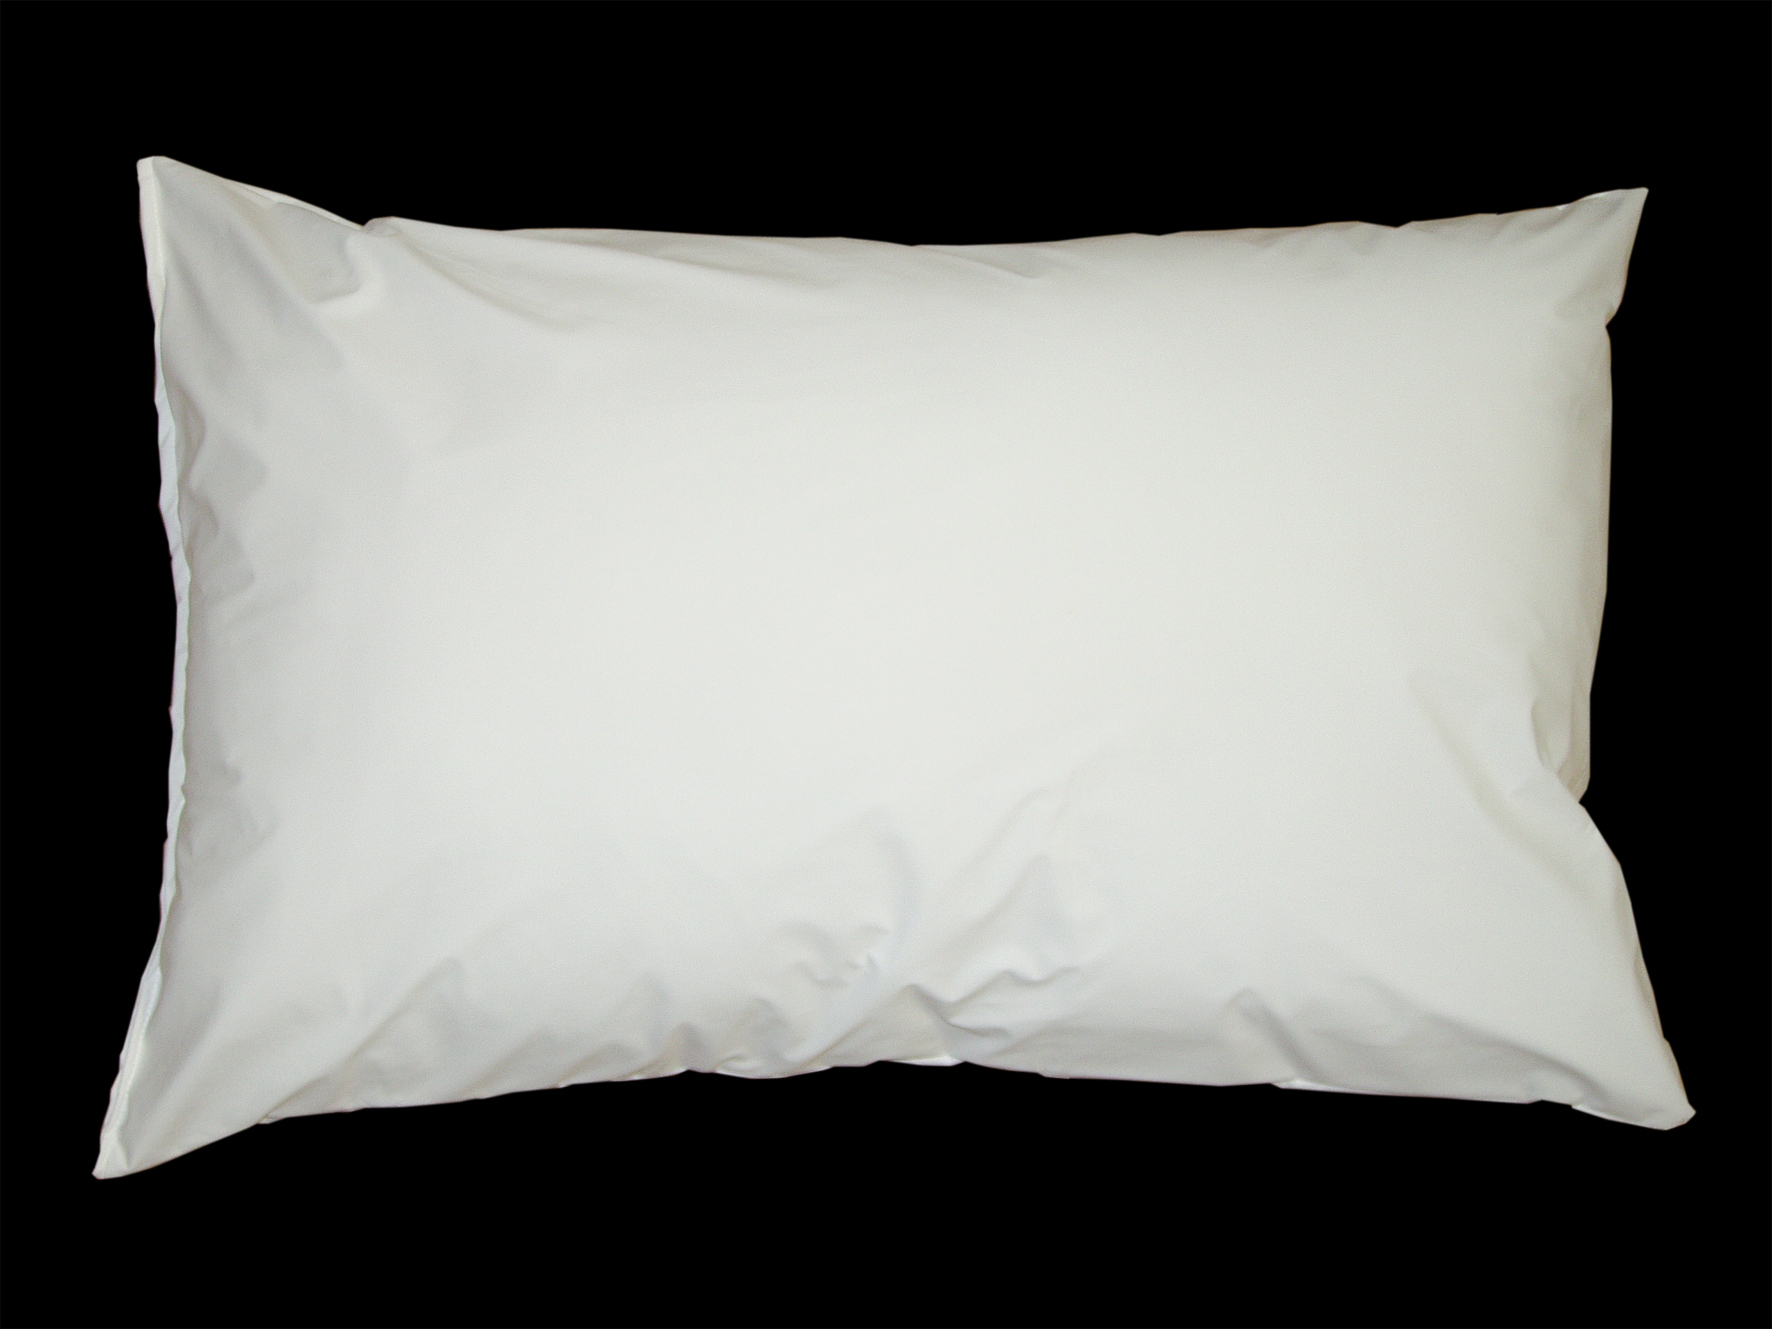 Wipe Clean Luxury Pillow